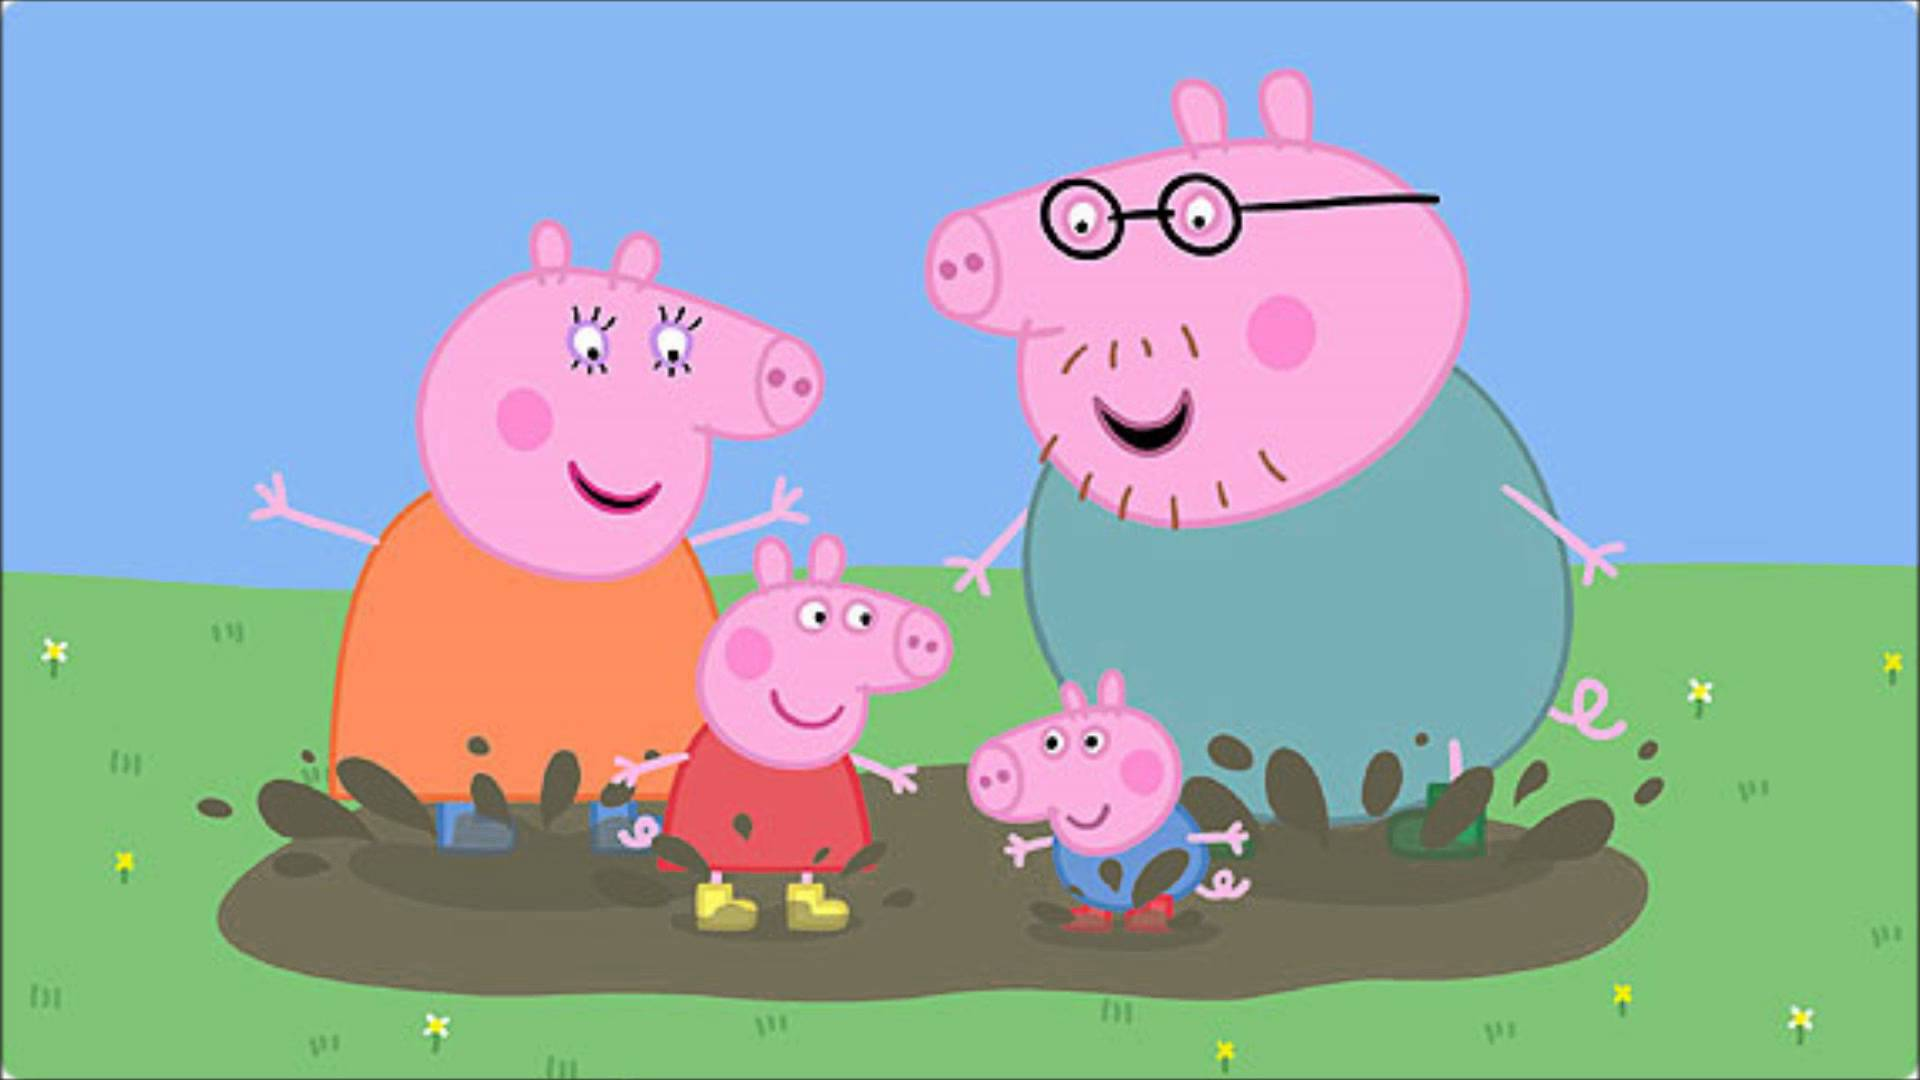 38+ Peppa Pig Wallpapers, HD Quality Peppa Pig Images, Peppa Pig ...